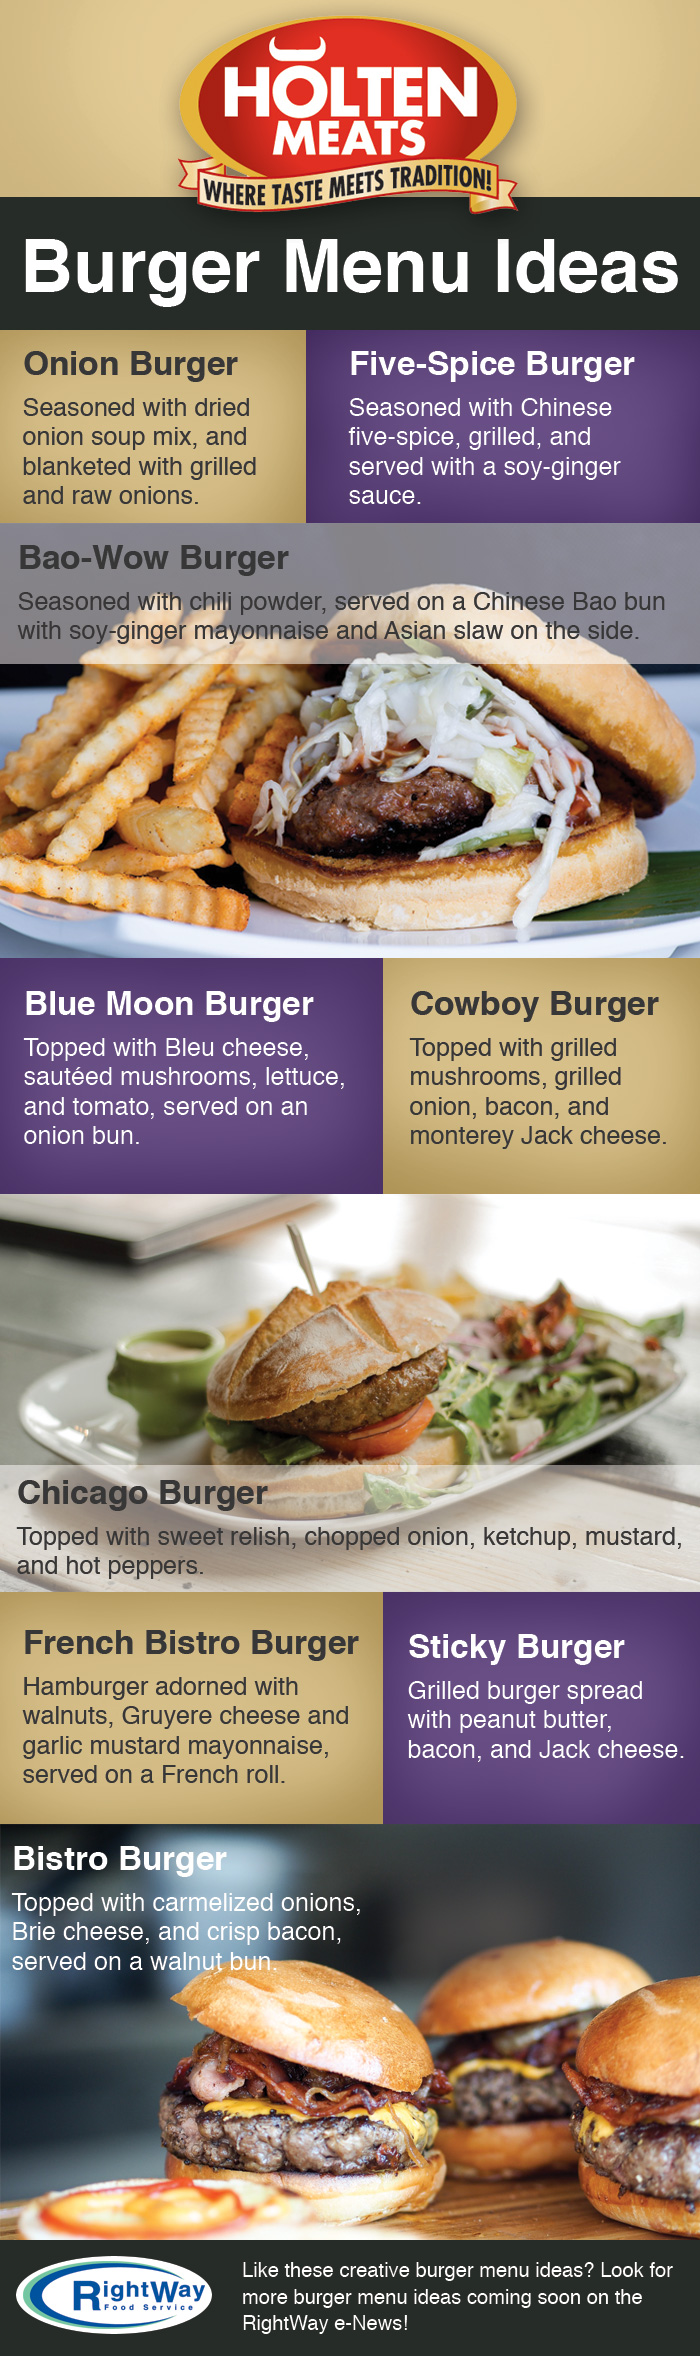 5-17 Creative Burger Menu Ideas